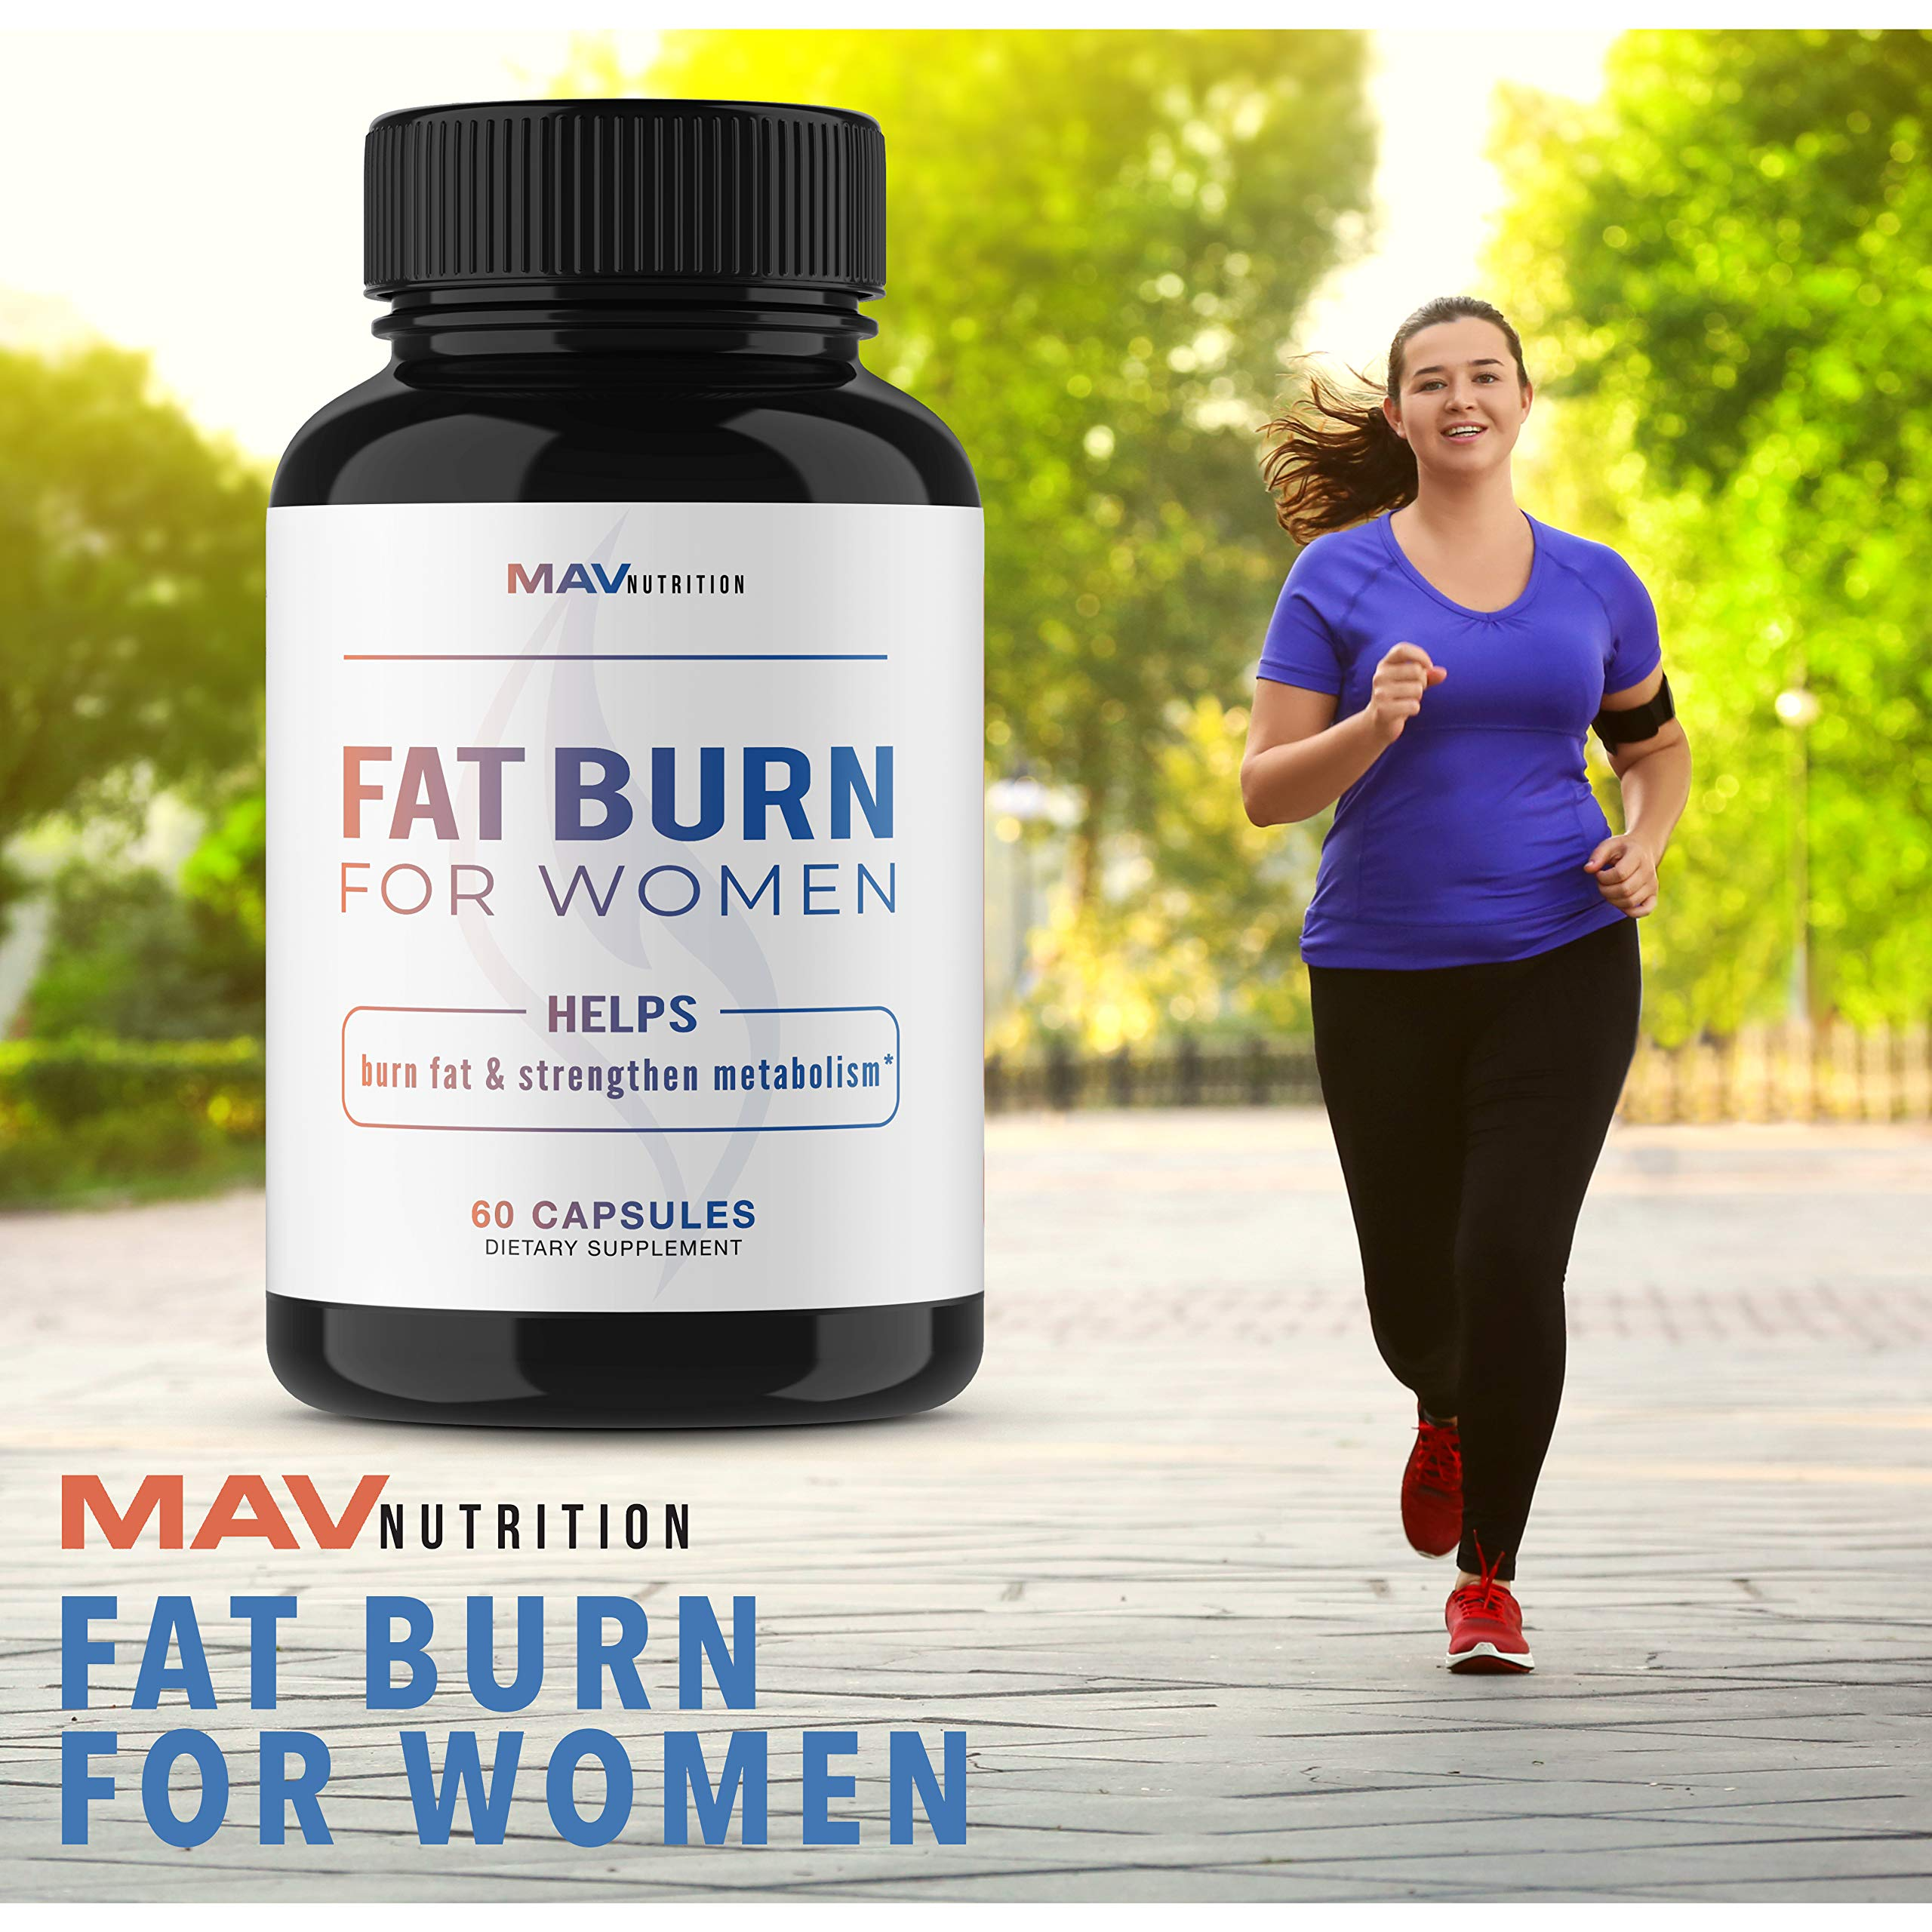 Womens Fat Burner Weight Loss Pills Designed for Increasing Healthy Metabolism, Supporting Energy Levels, Fat Loss, and Increasing Tone; Non-GMO, Gelatin-Free; 60 Vegetarian Capsules for Women by MAV NUTRITION (Image #8)